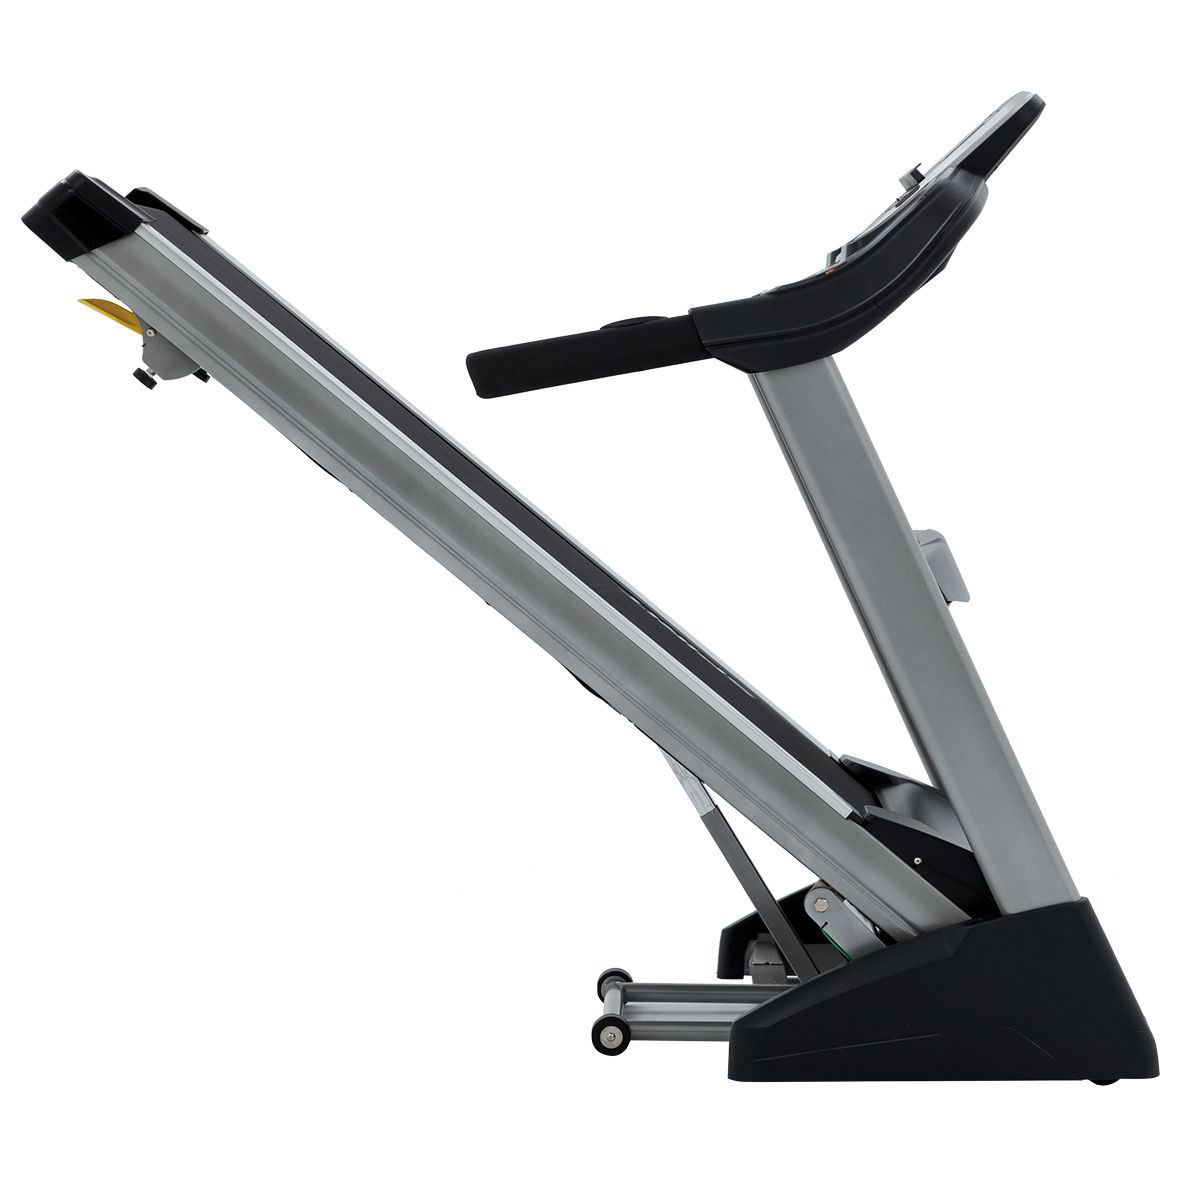 Spirit Fitness XT385 Treadmill showing view of running belt/deck in folded position as well as heavy duty frame.